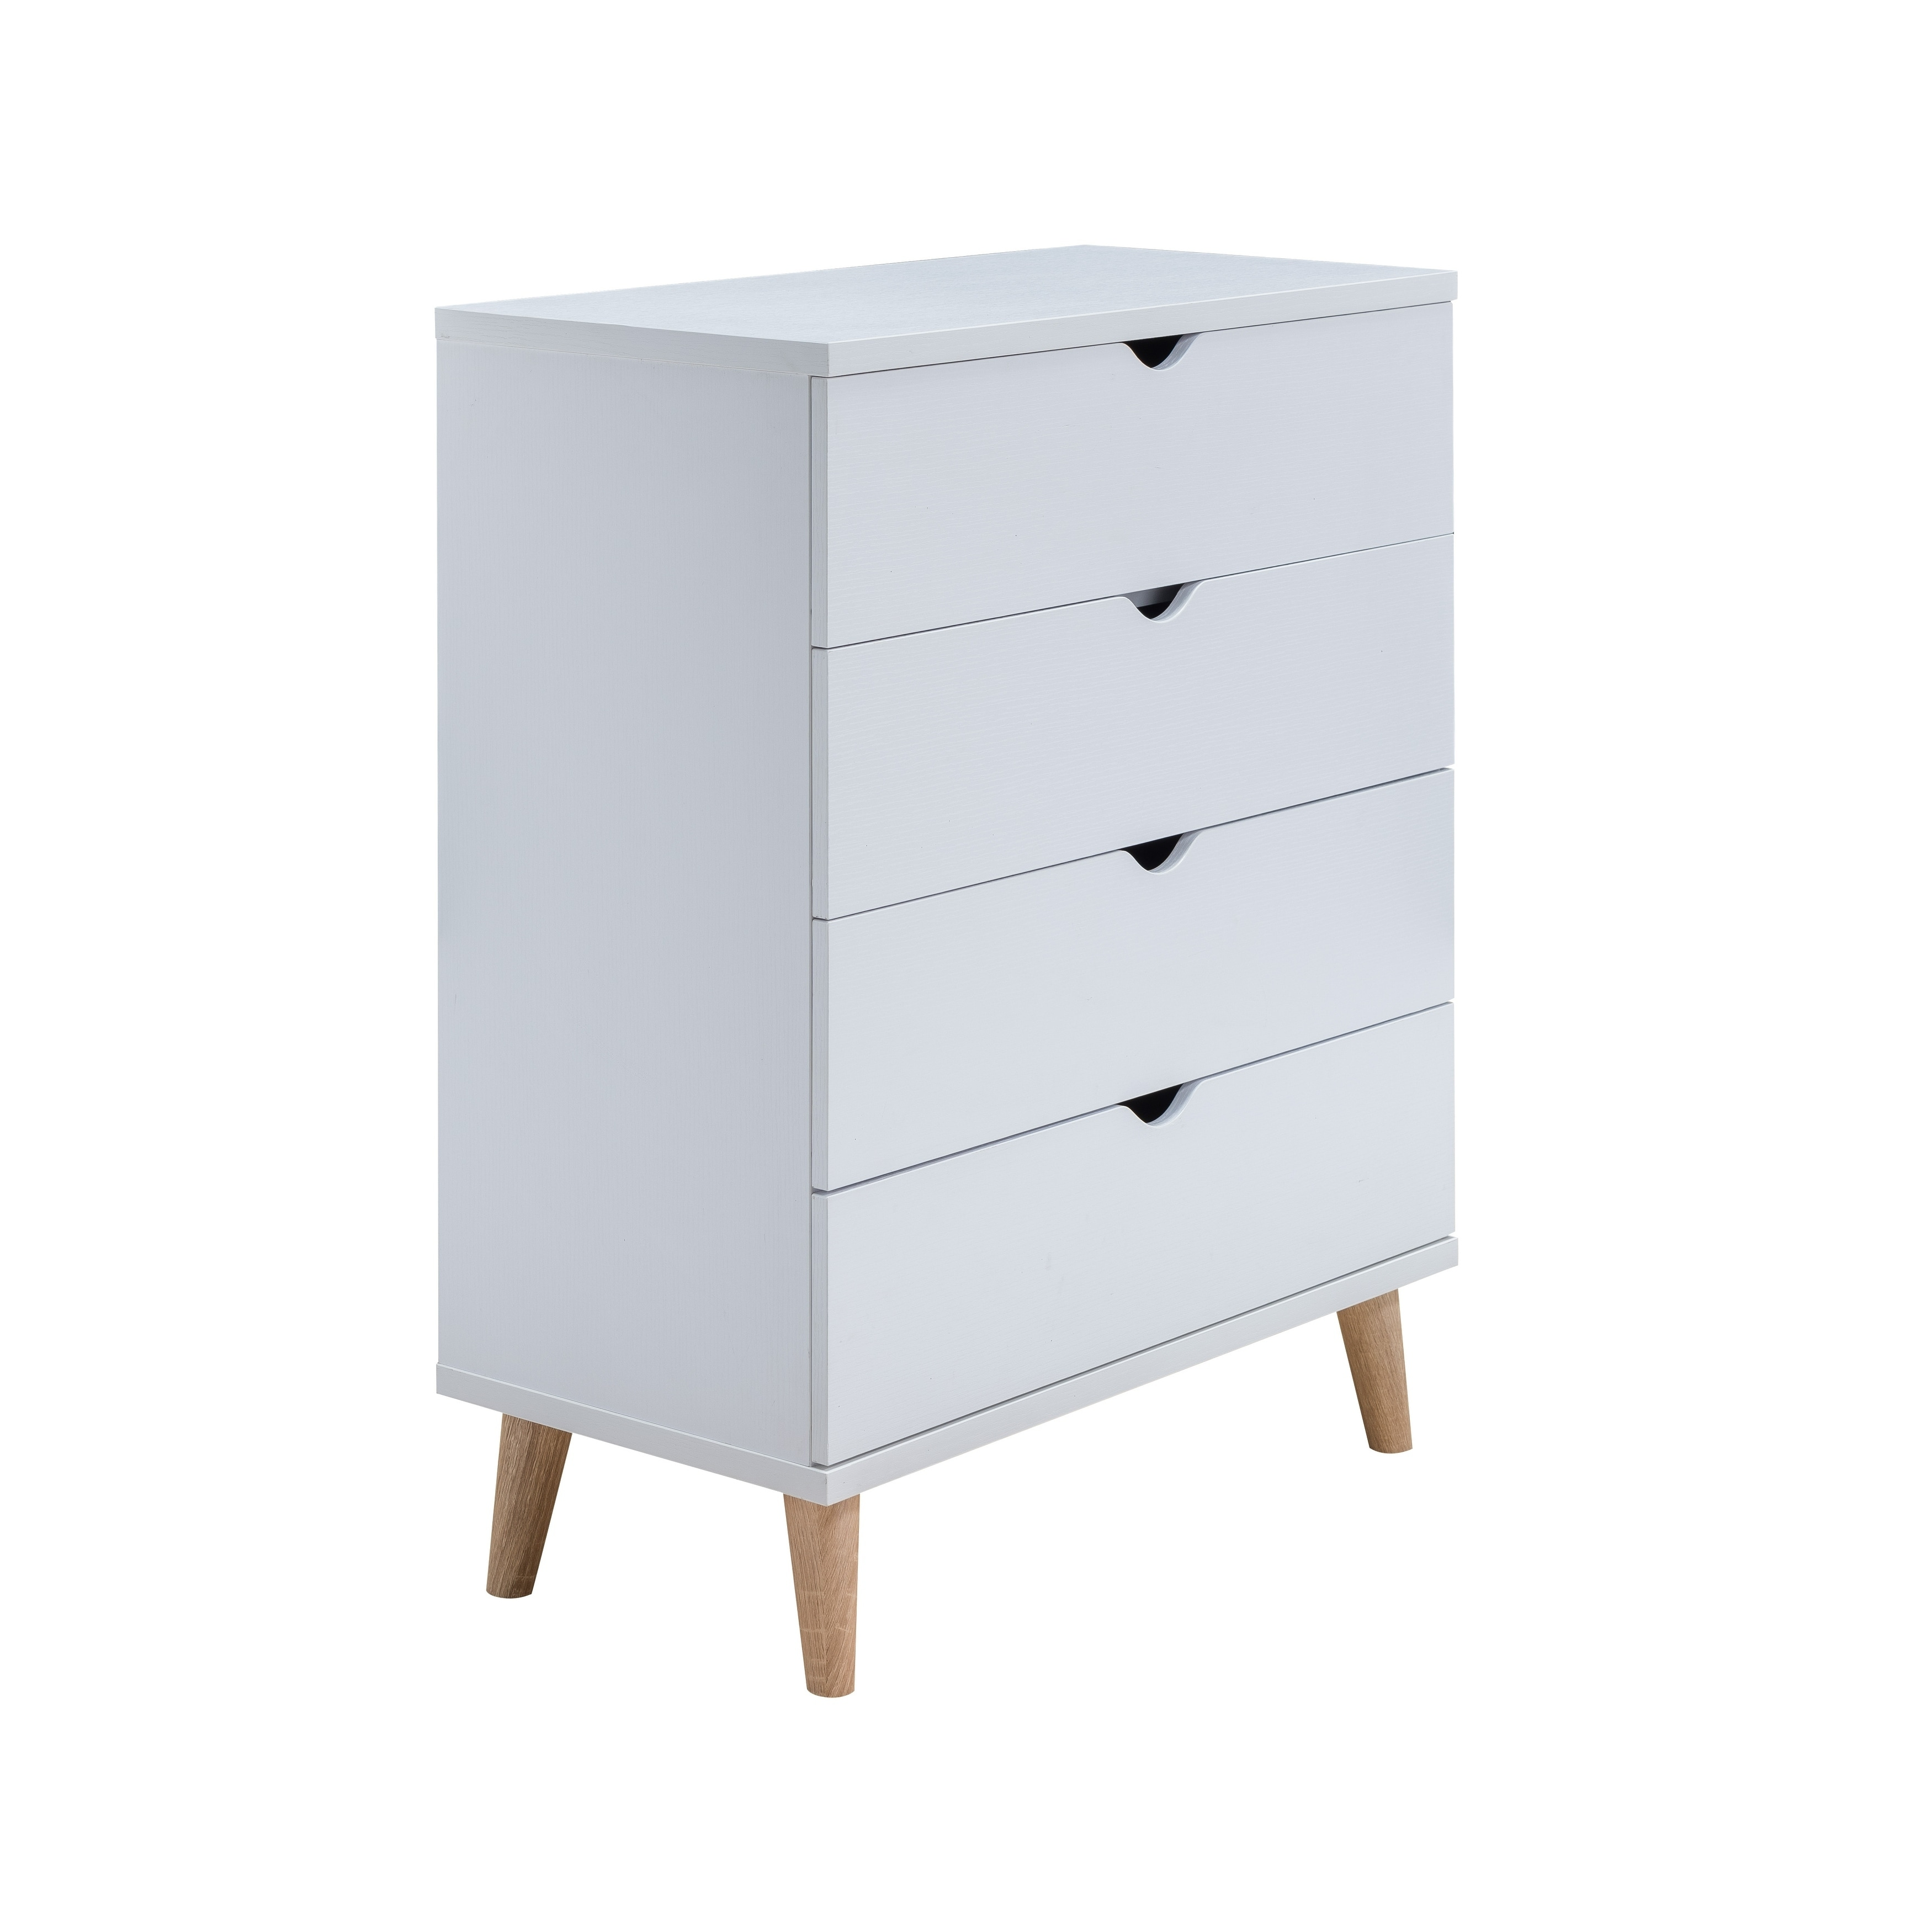 4 drawer chest. Shop Bridgette II Modern White 4-drawer Chest - Free Shipping Today Overstock.com 20931709 4 Drawer